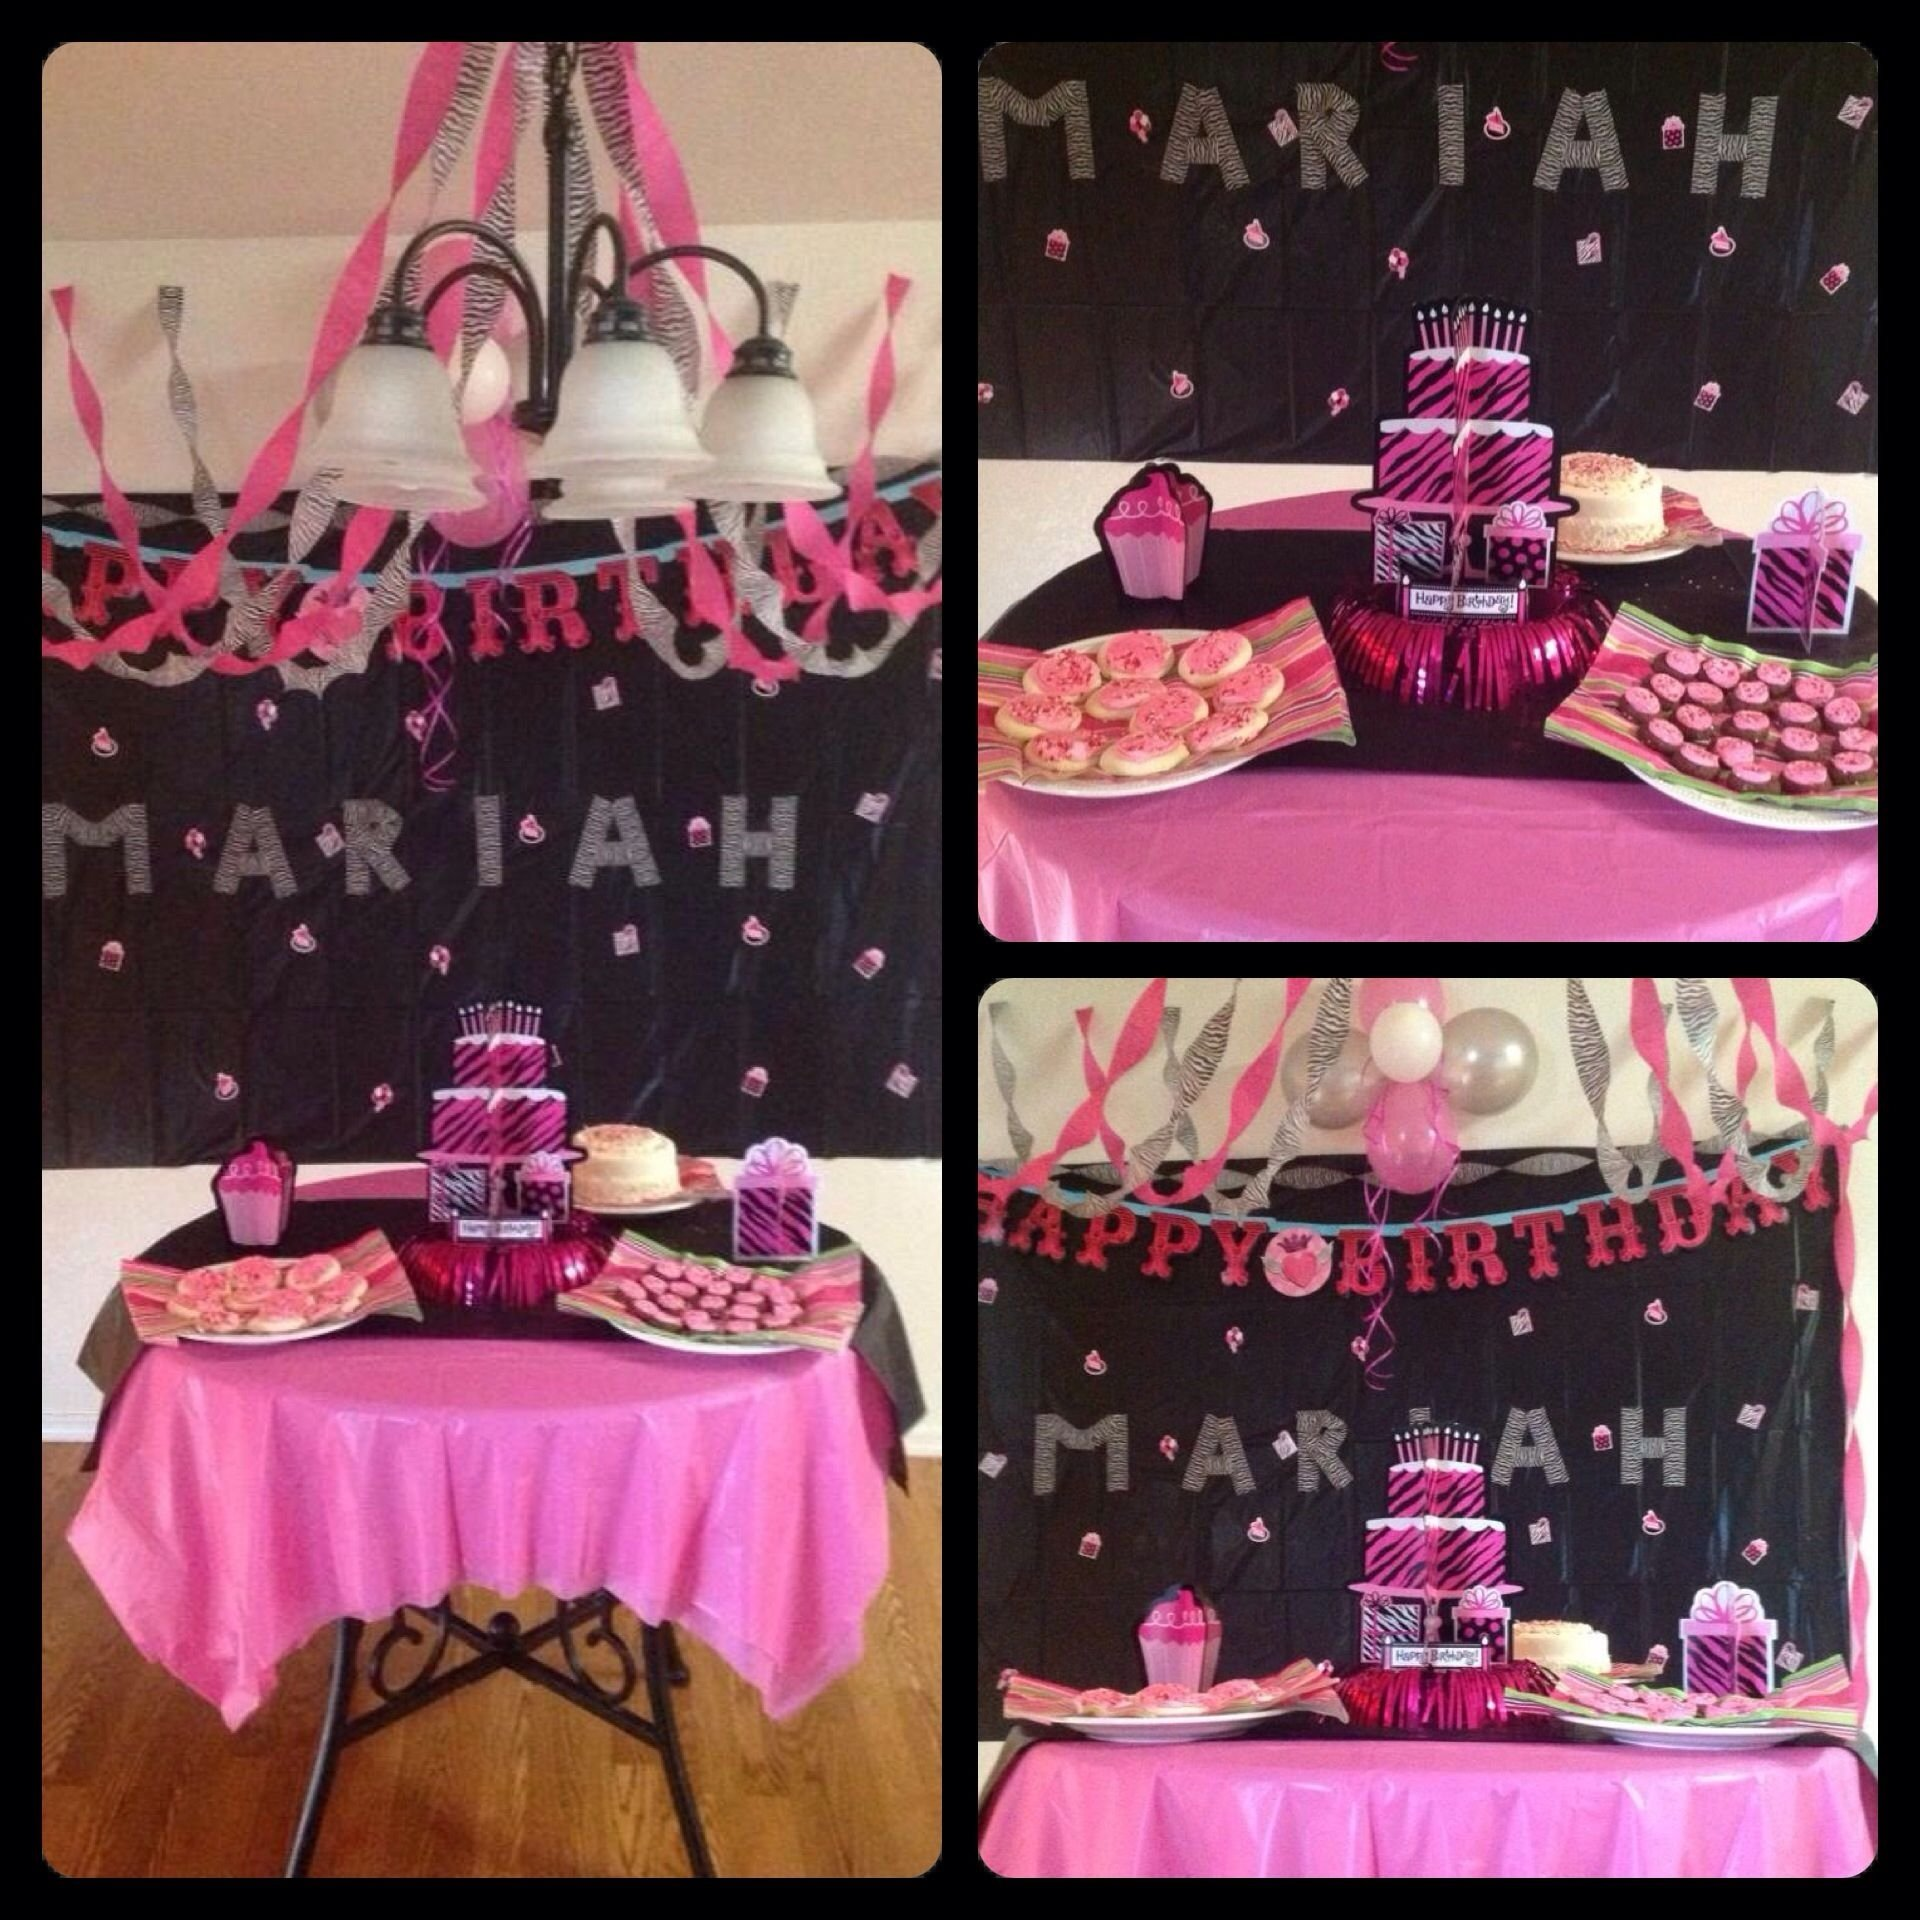 10 Gorgeous Birthday Ideas For 10 Yr Old Girl party ideas had my 10 year old celebrate her birthday with some 1